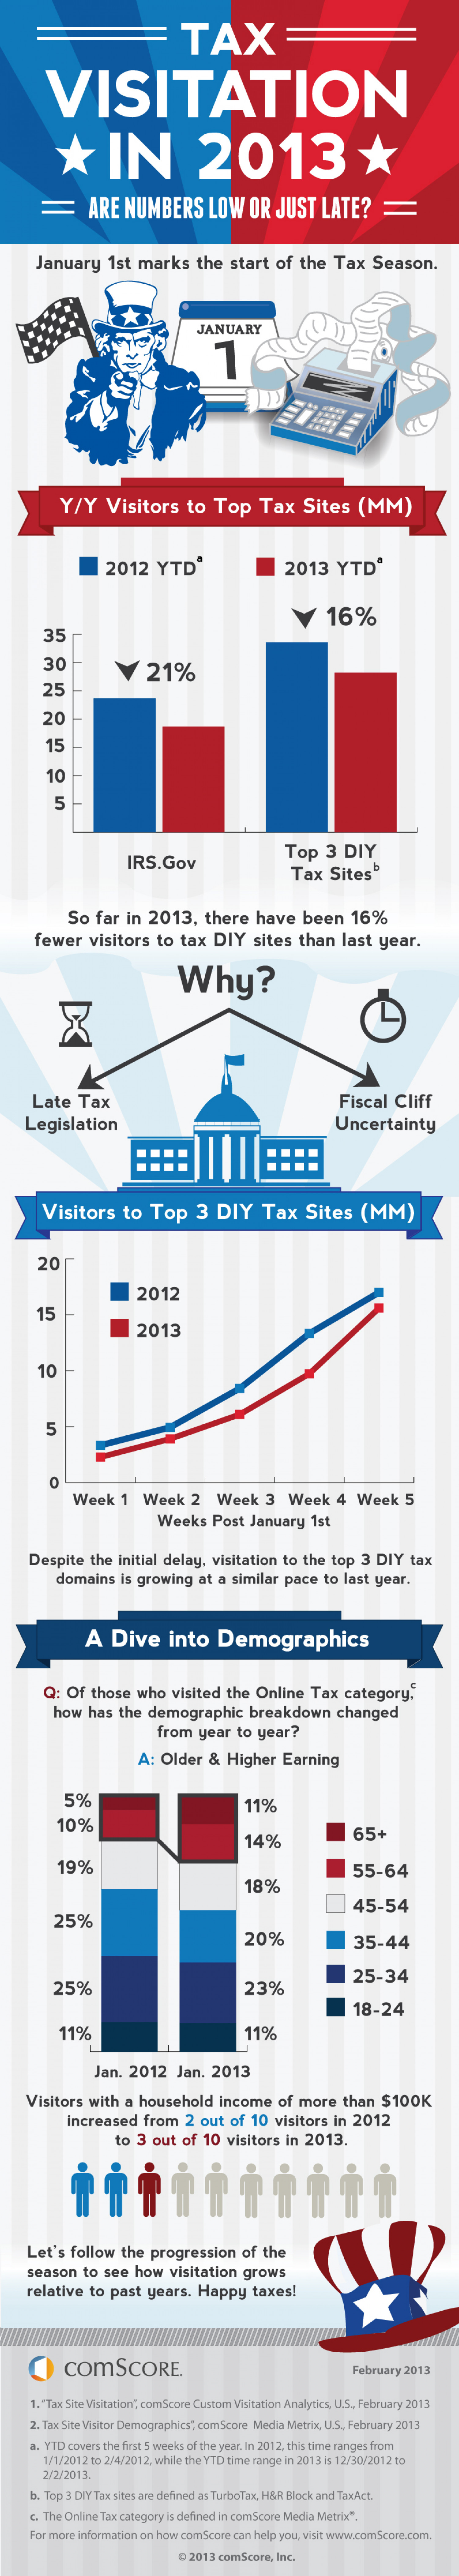 U.S. Tax Visitation Gears Up Later in the Tax Season Infographic